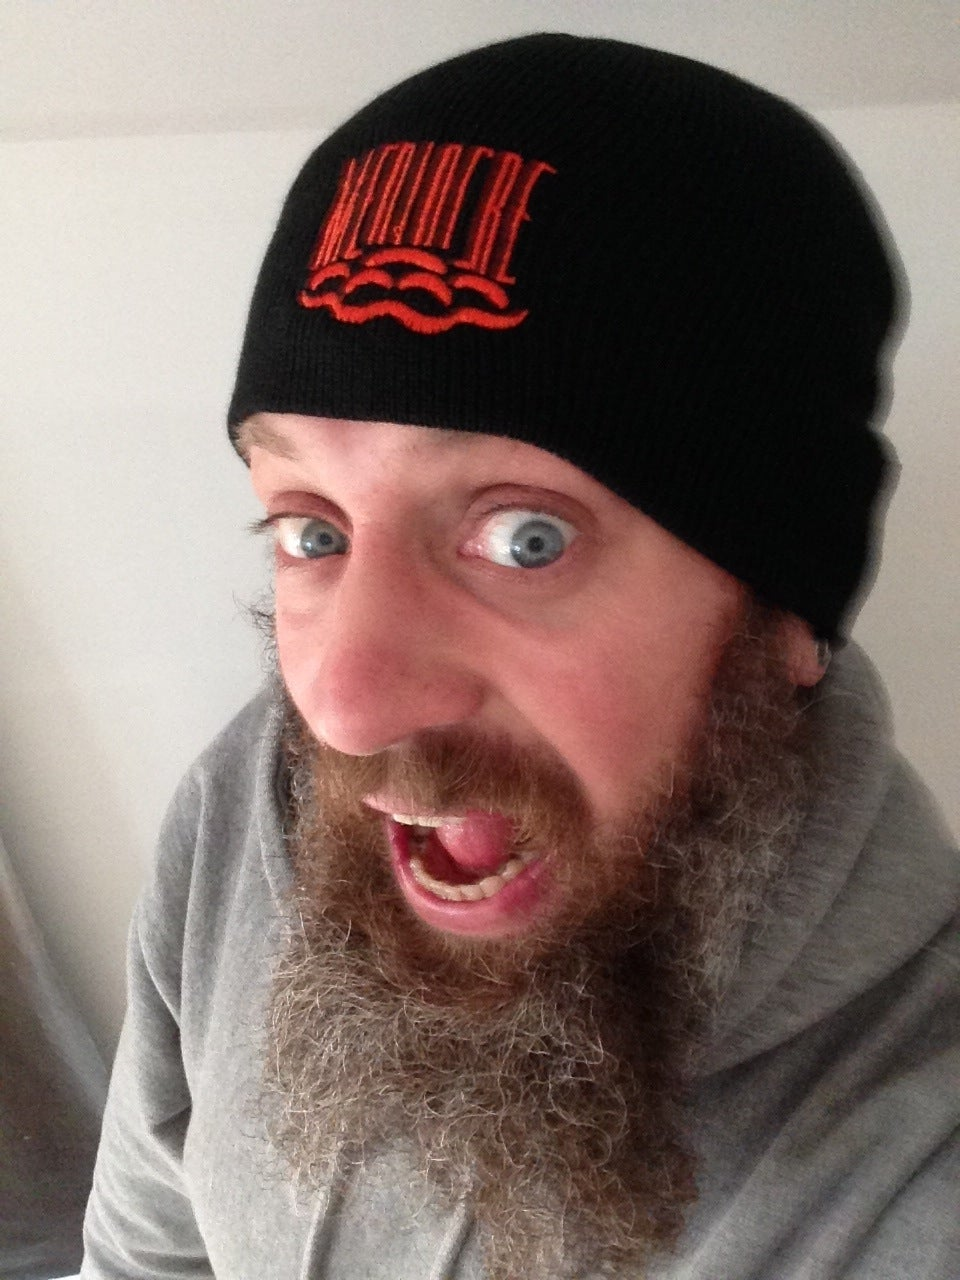 Image of Mediocre Beanie hat (toque)